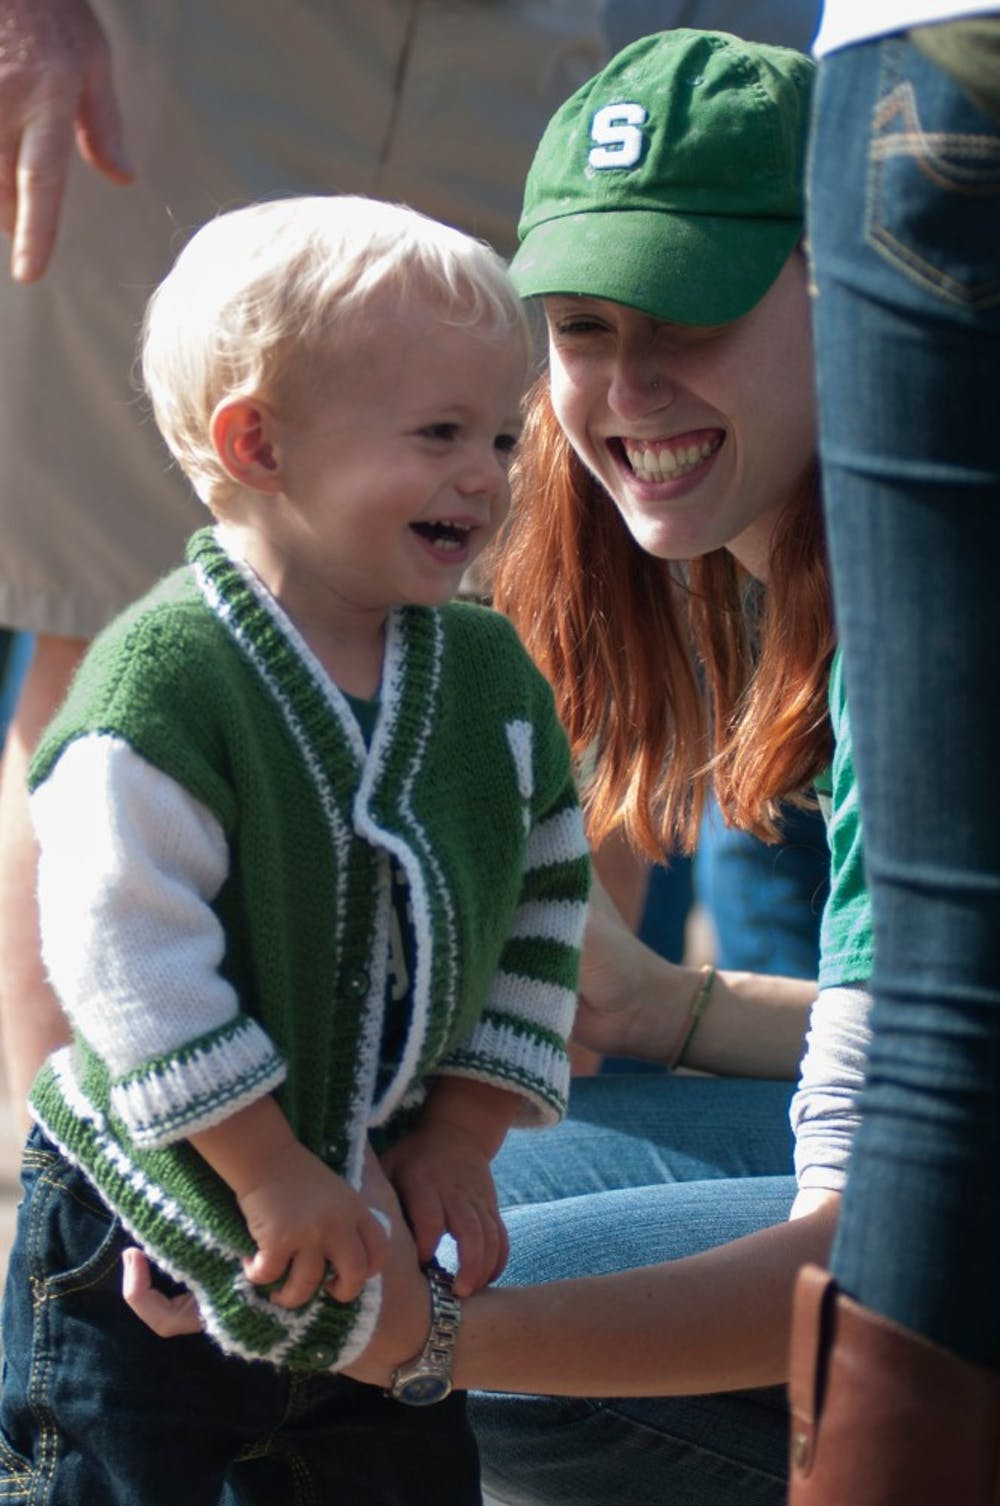 <p>Okemos resident Monica Herman and her son Ben, 1, tailgate before the game against Air Force on Sept. 19, 2015 at Munn Field. The Spartans defeated the Falcons, 35-21. Kennedy Thatch/The State News</p>